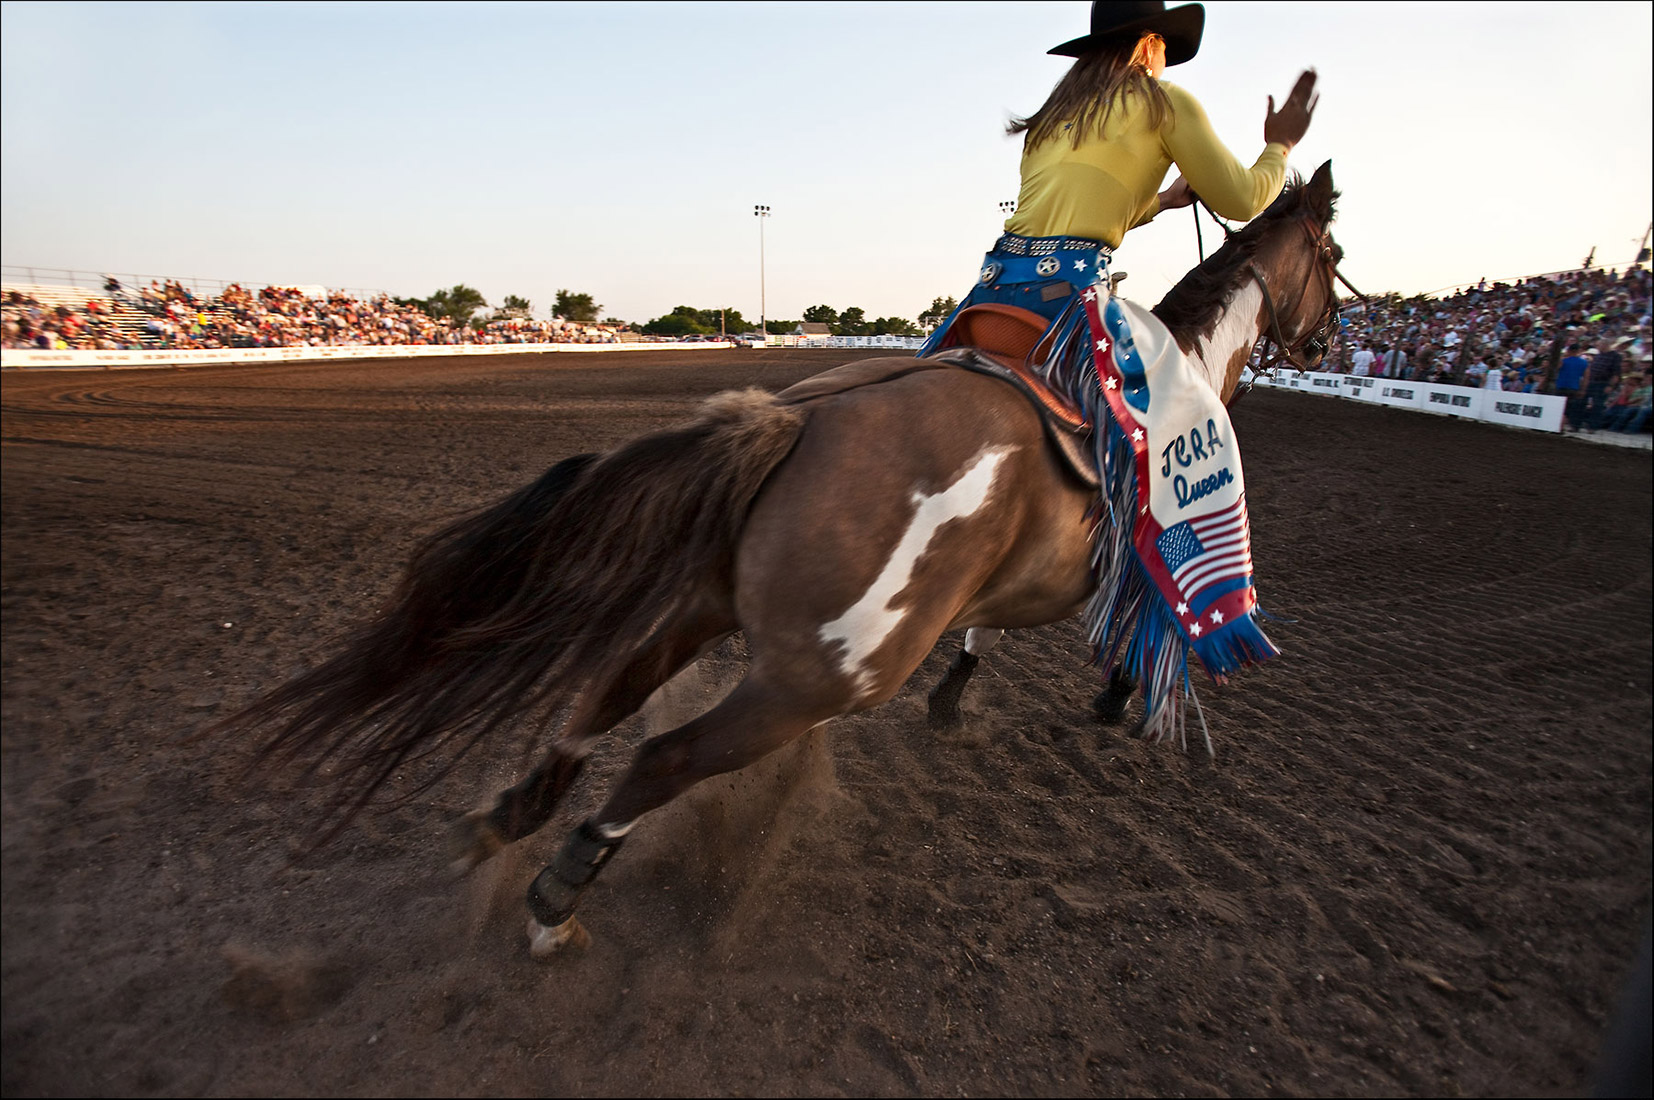 090606_rodeo_0372